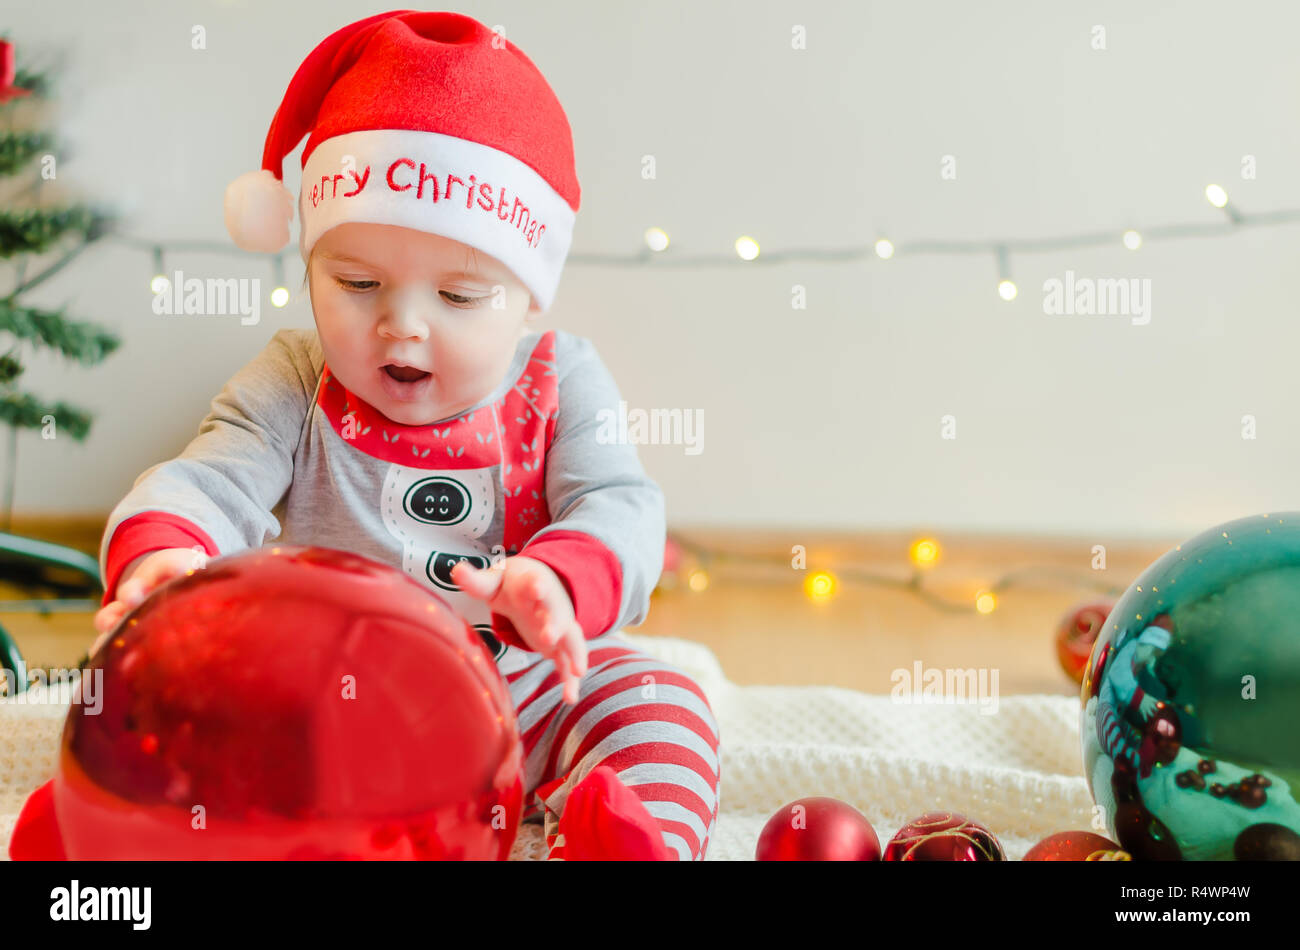 f731f575a Waiting For Christmas Stock Photos   Waiting For Christmas Stock ...